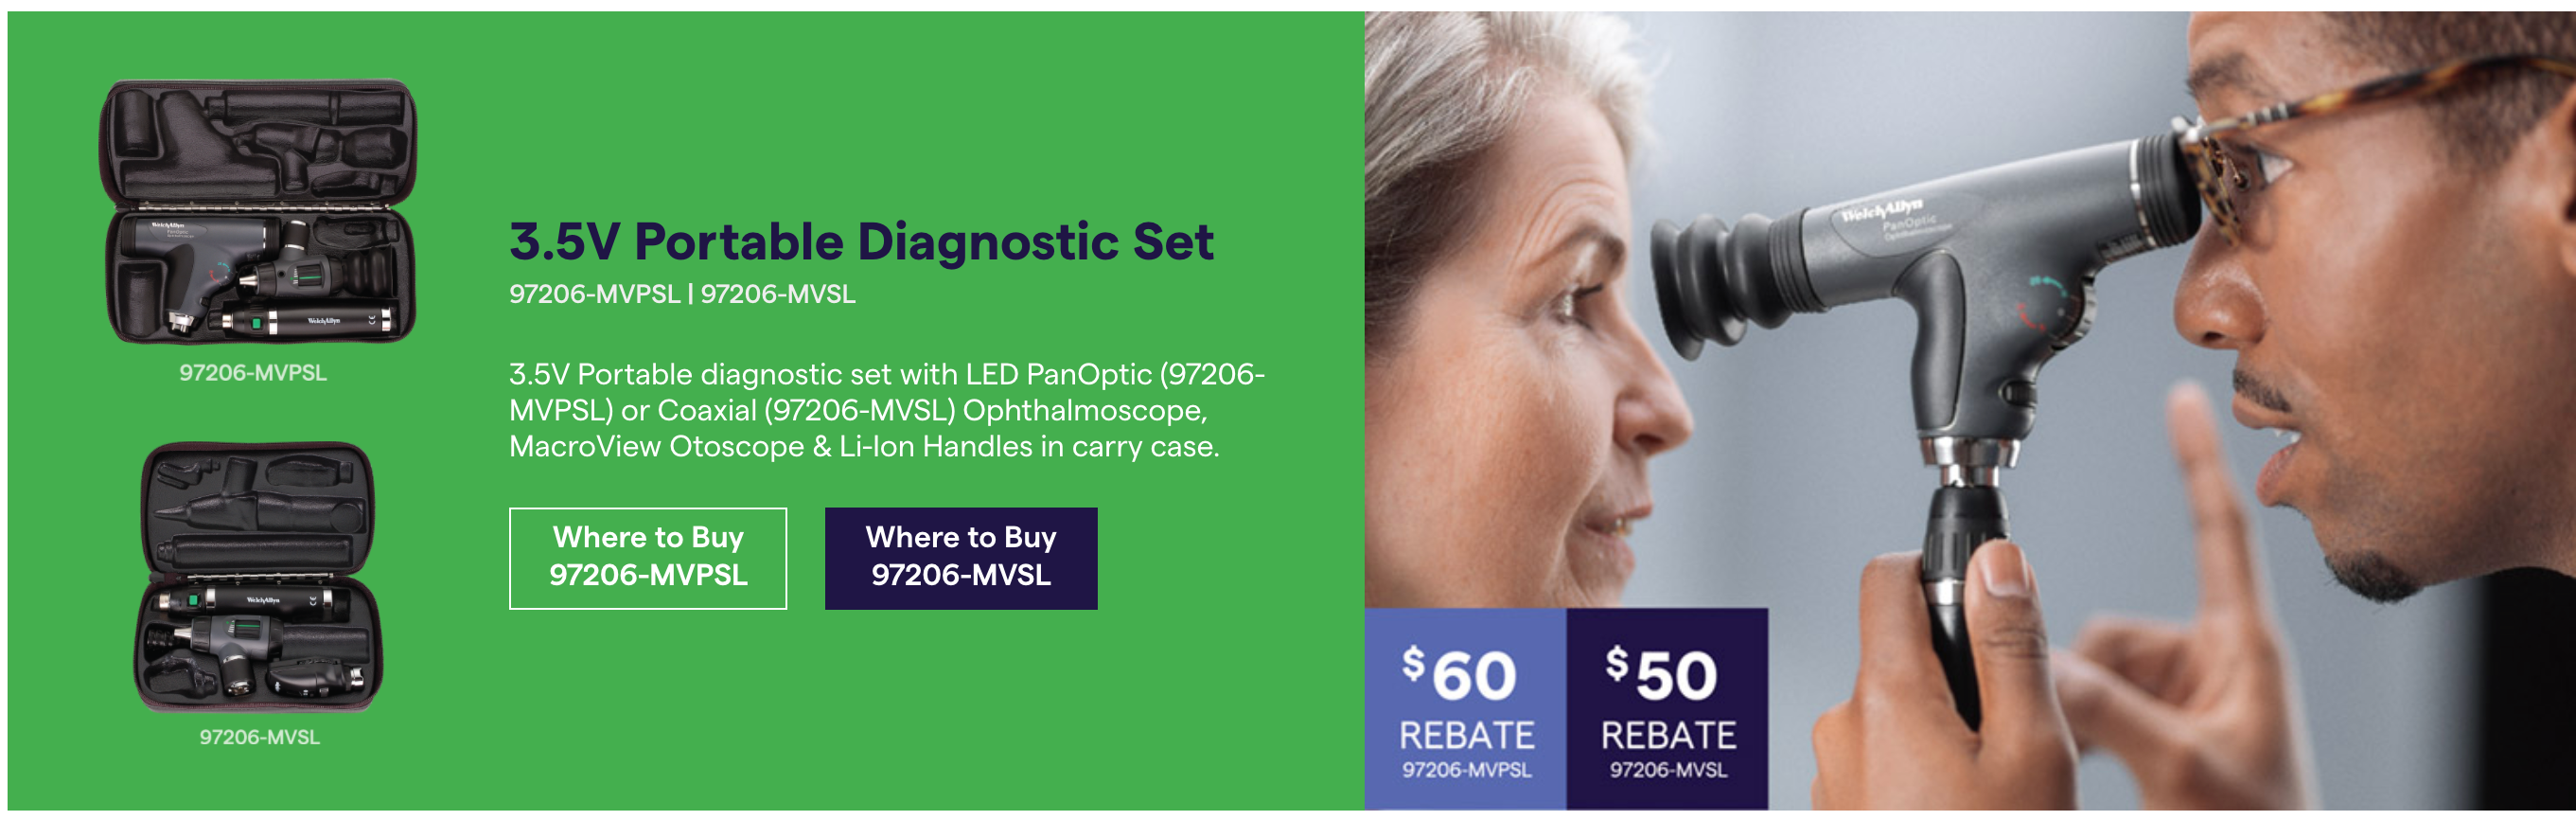 Otoscope and Ophthalmoscope Diagnostic Set